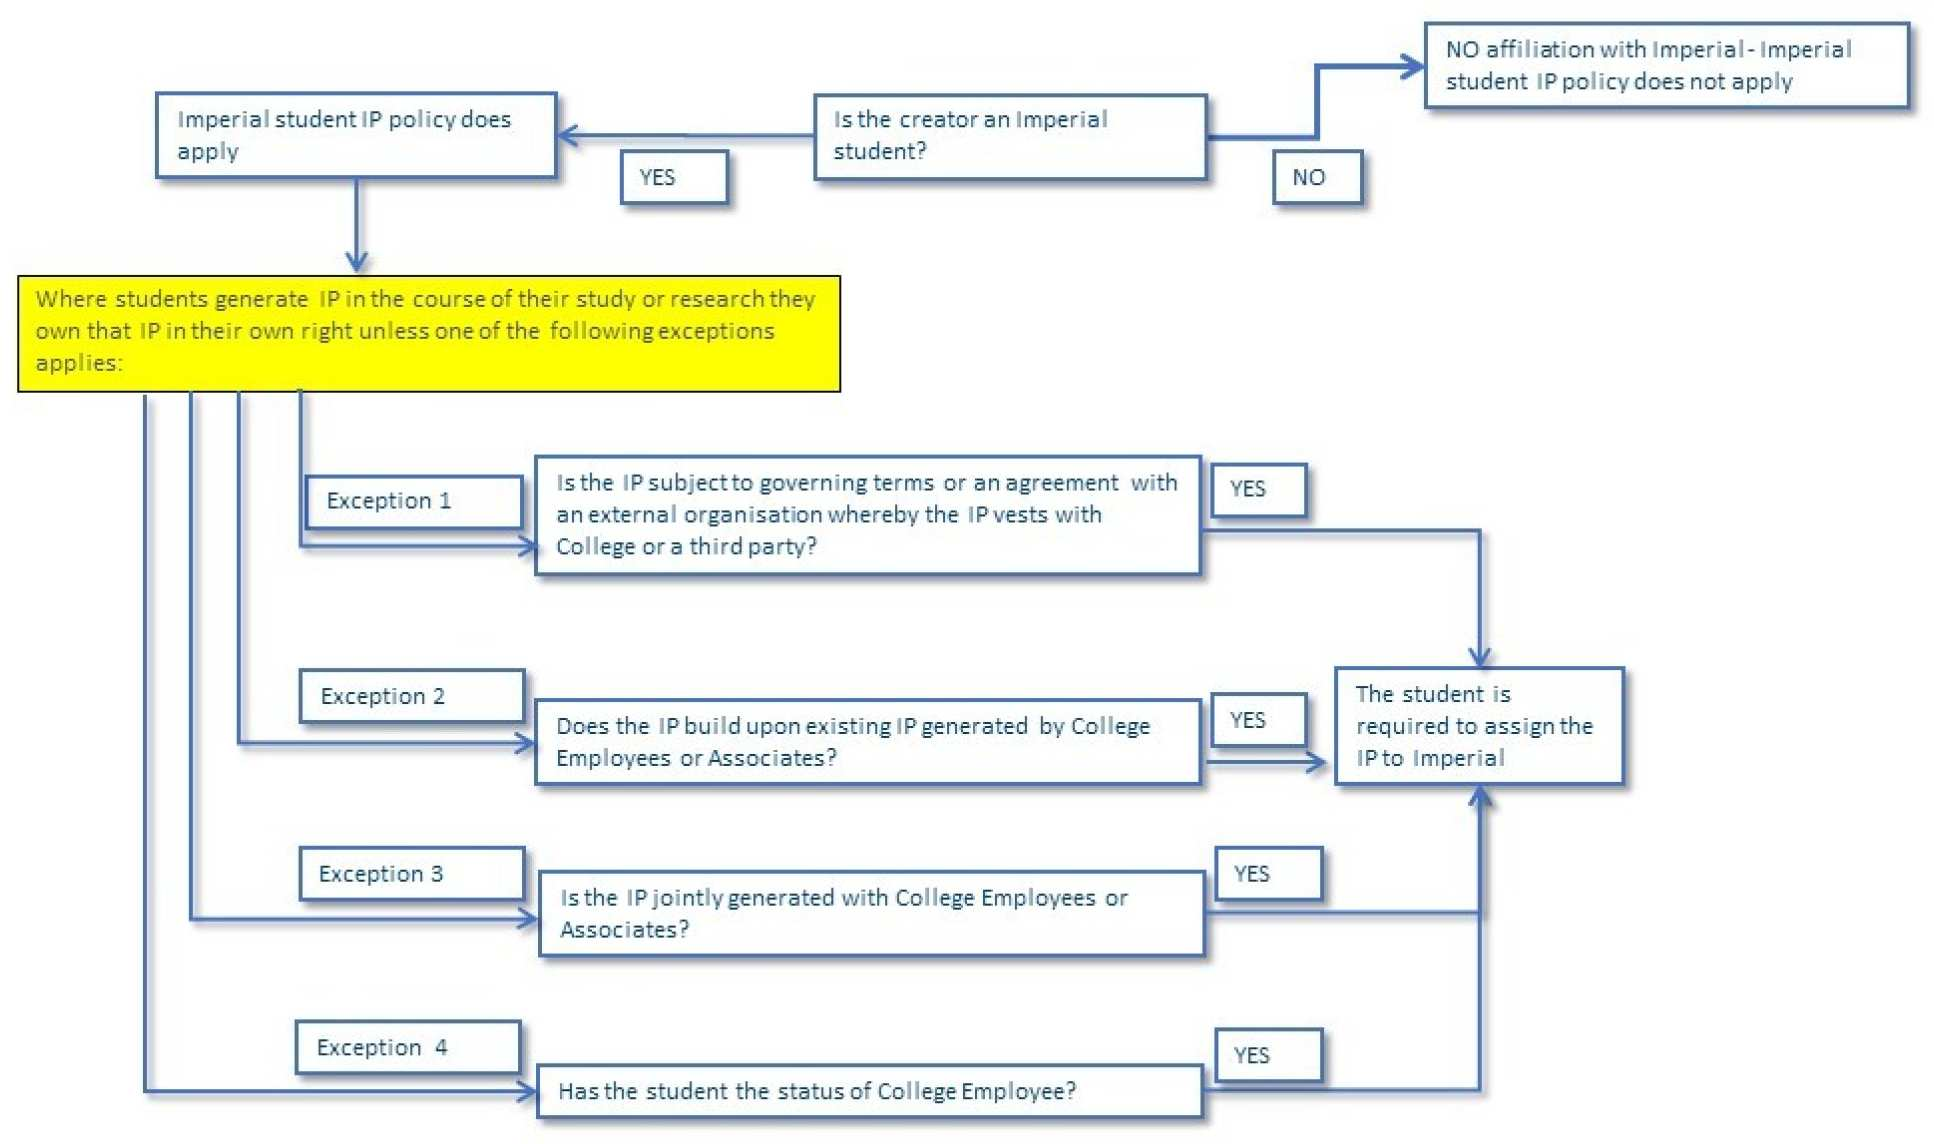 Student IP flowchart. Summarises information given in plain text at the top of the page.